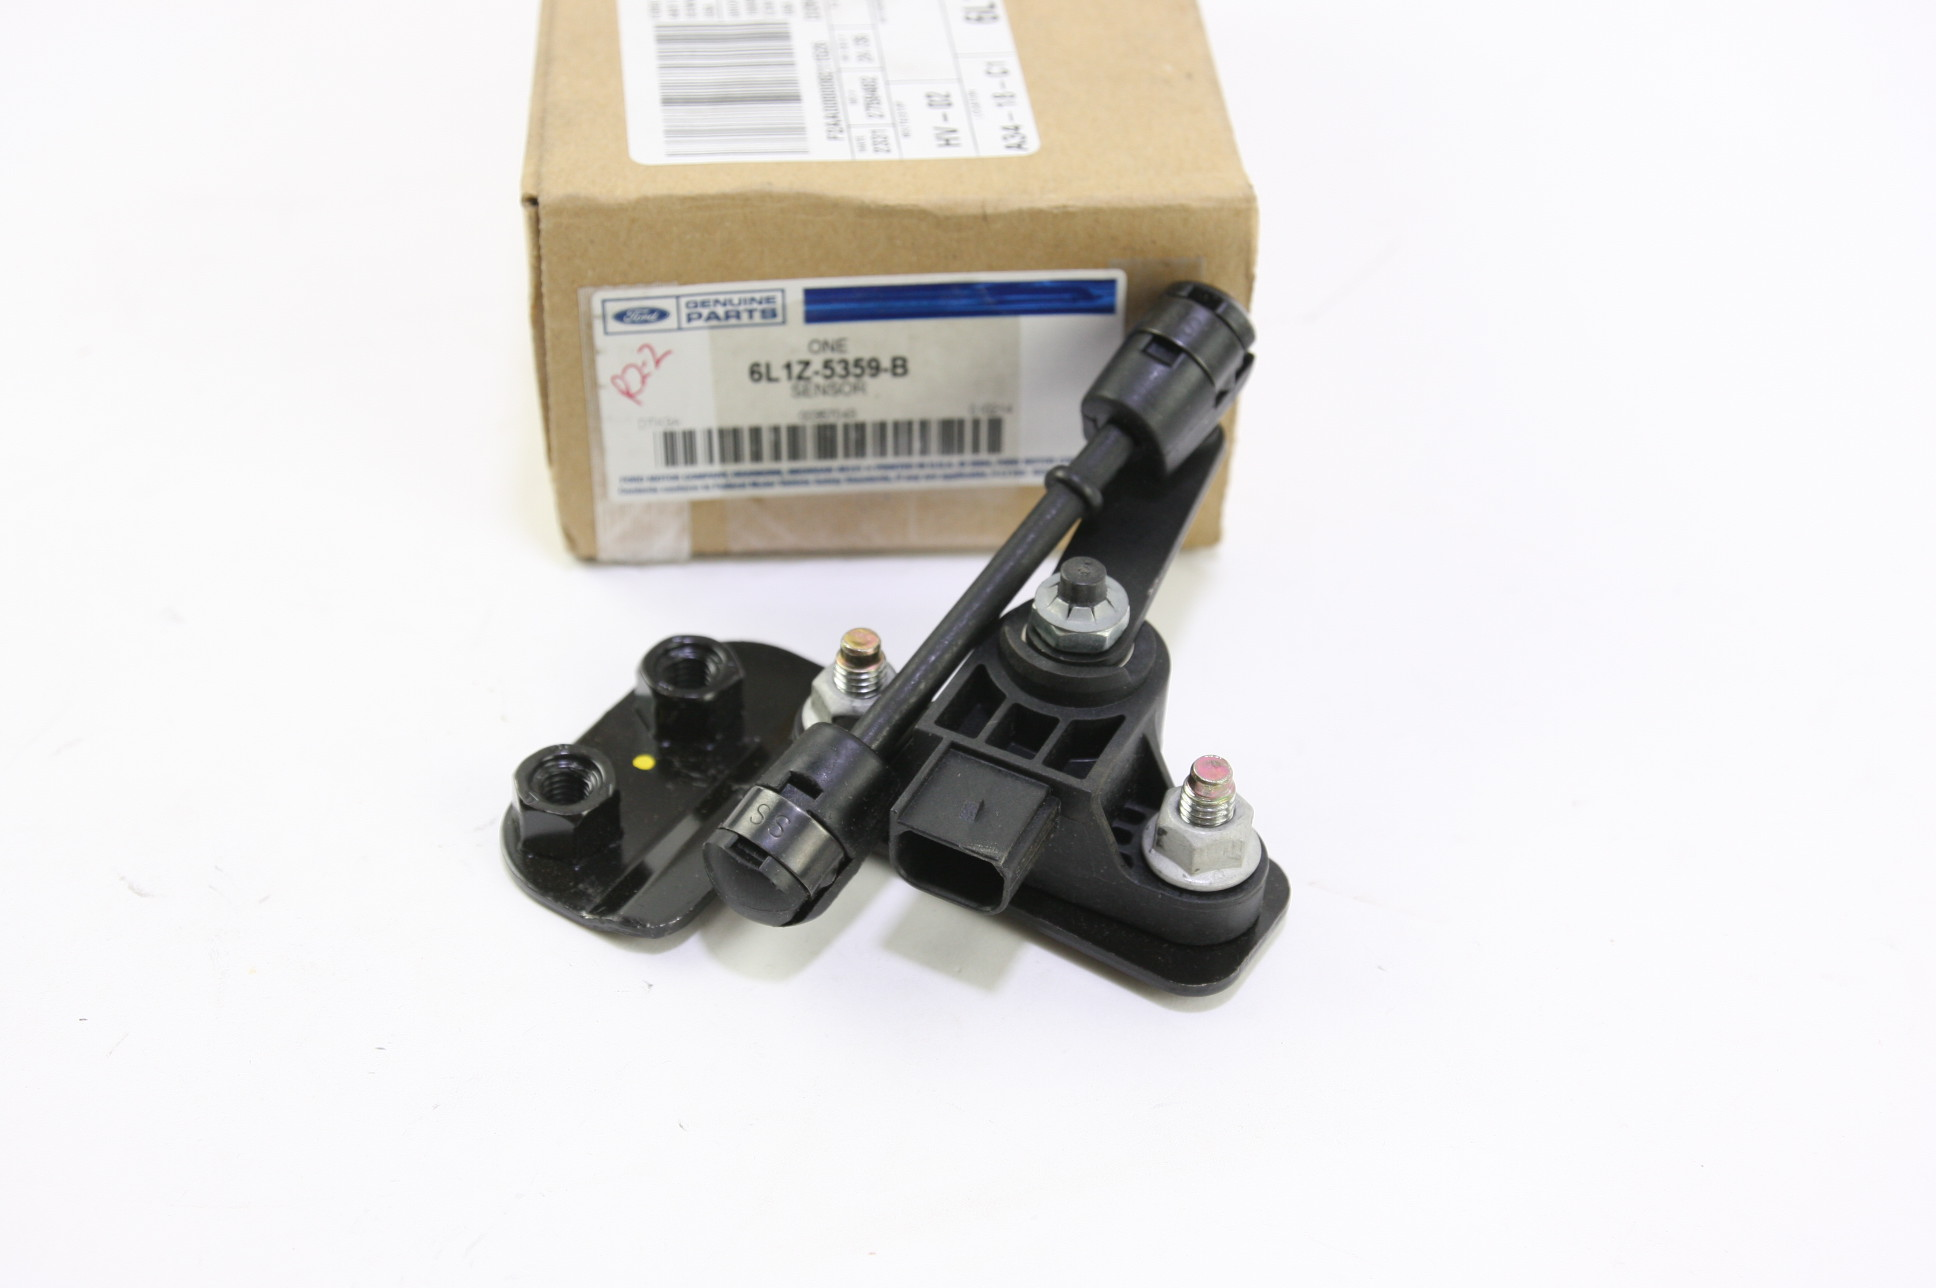 *** New OEM 6L1Z5359B Ford Lincoln Front Driver Side Air Ride Suspension Sensor - image 1